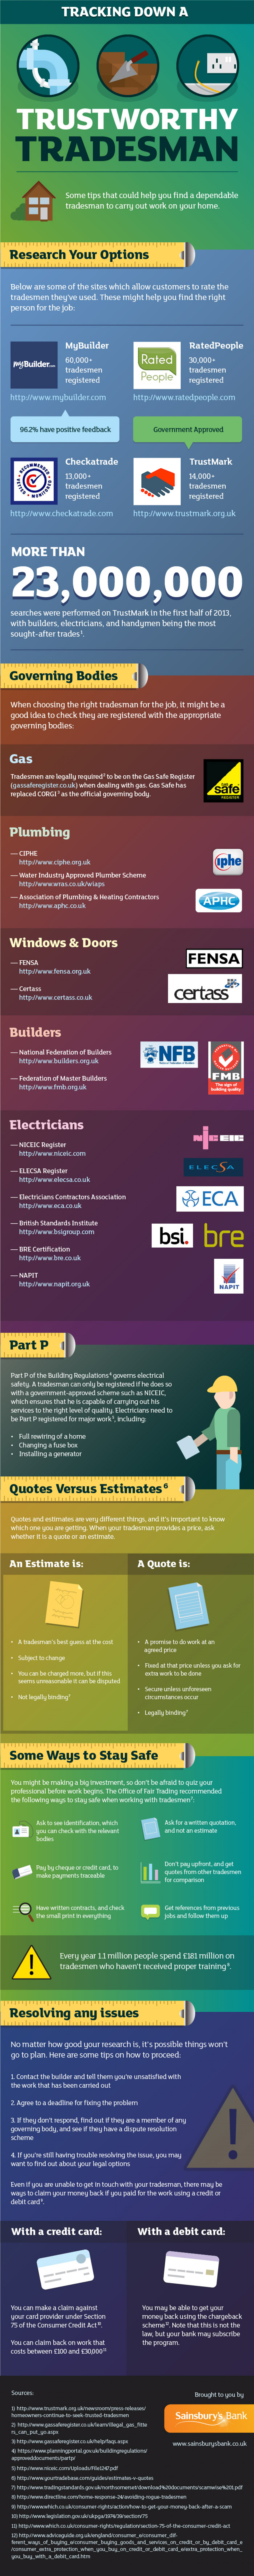 Tracking Down a Trustworthy Tradesman Infographic